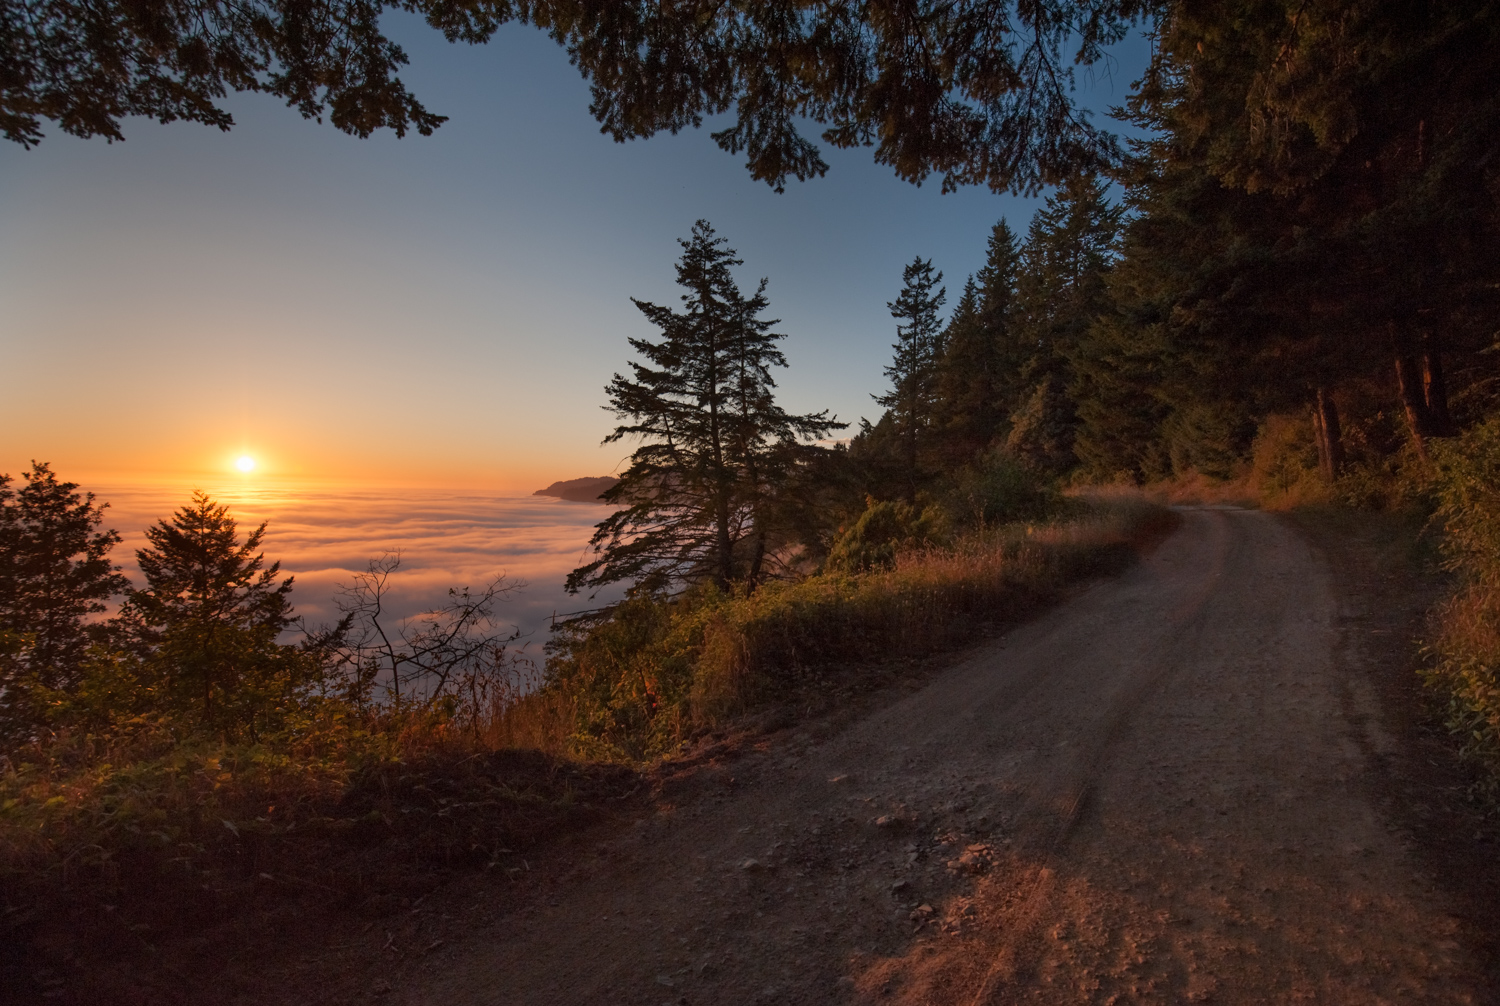 20140727_Road-Sunset_1.jpg